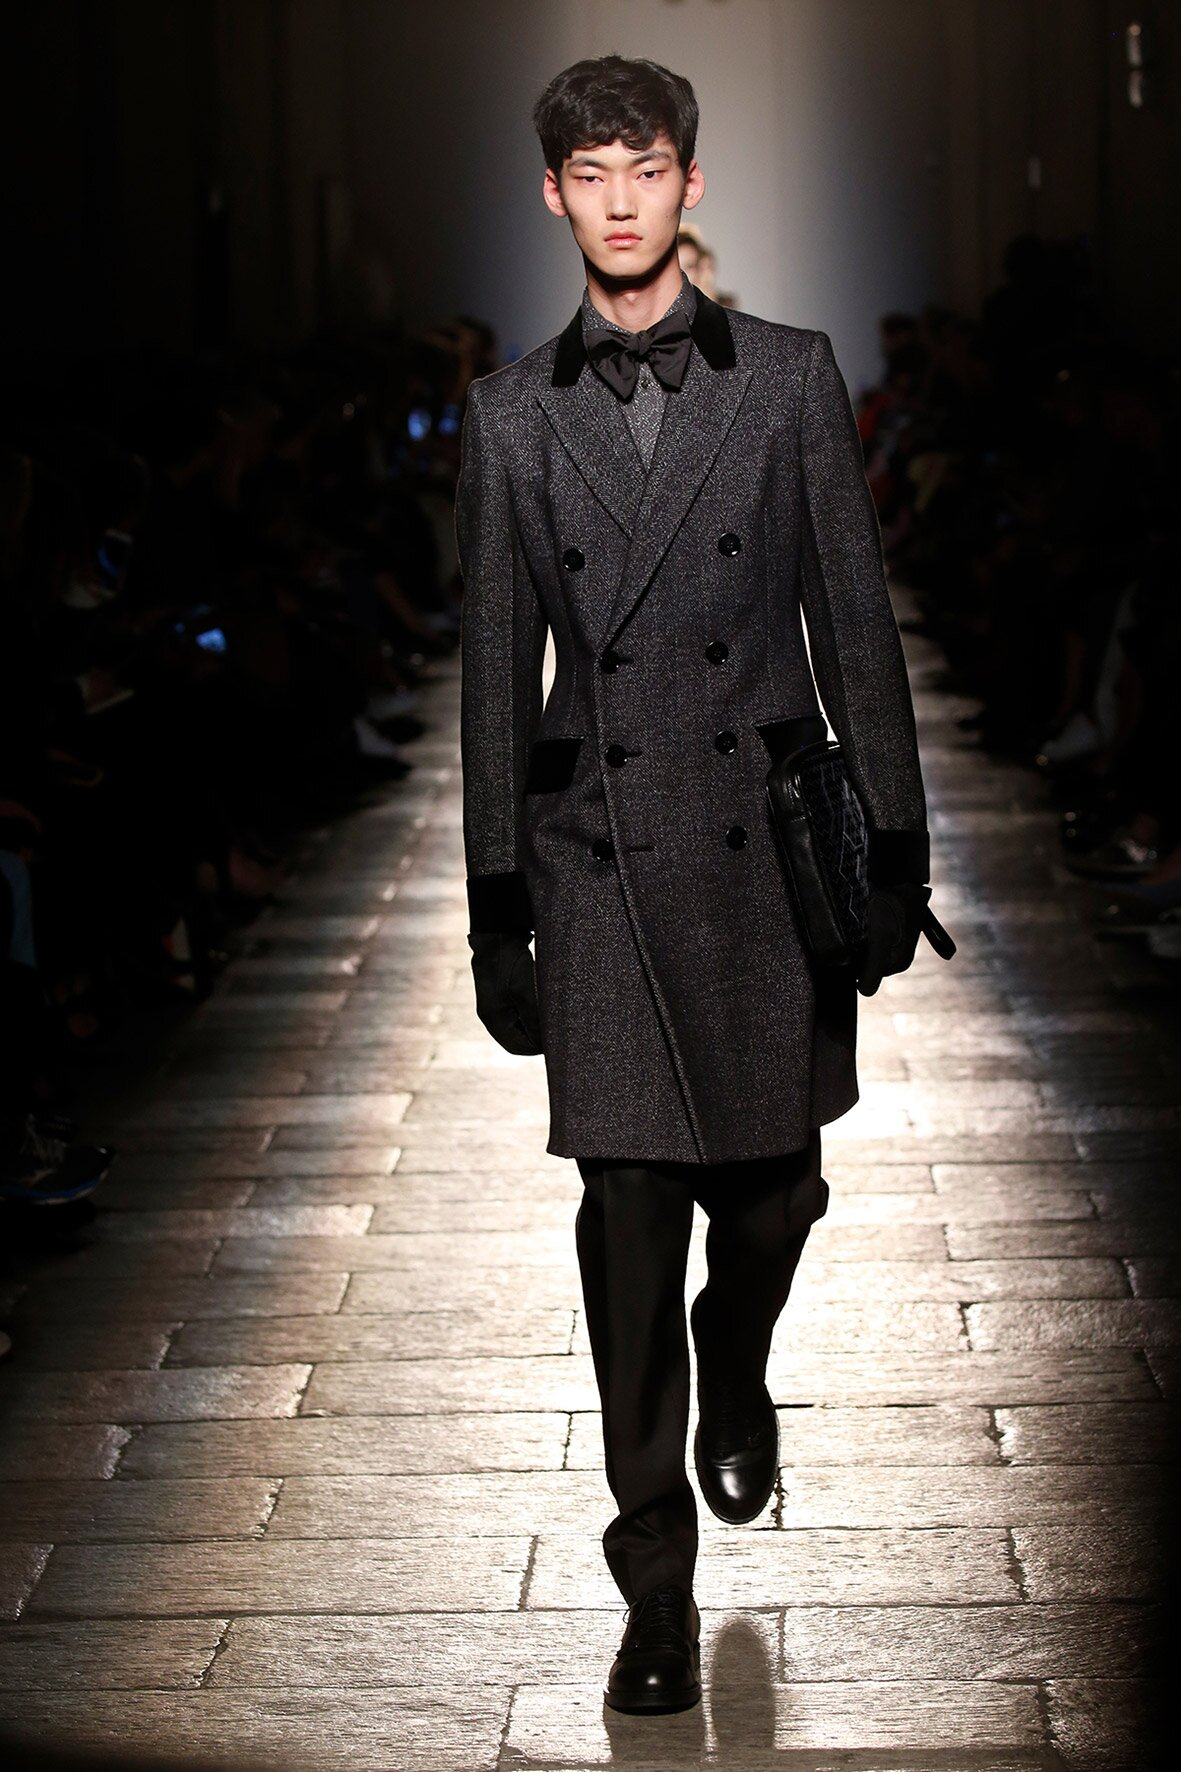 Fashion Model Bottega Veneta Catwalk